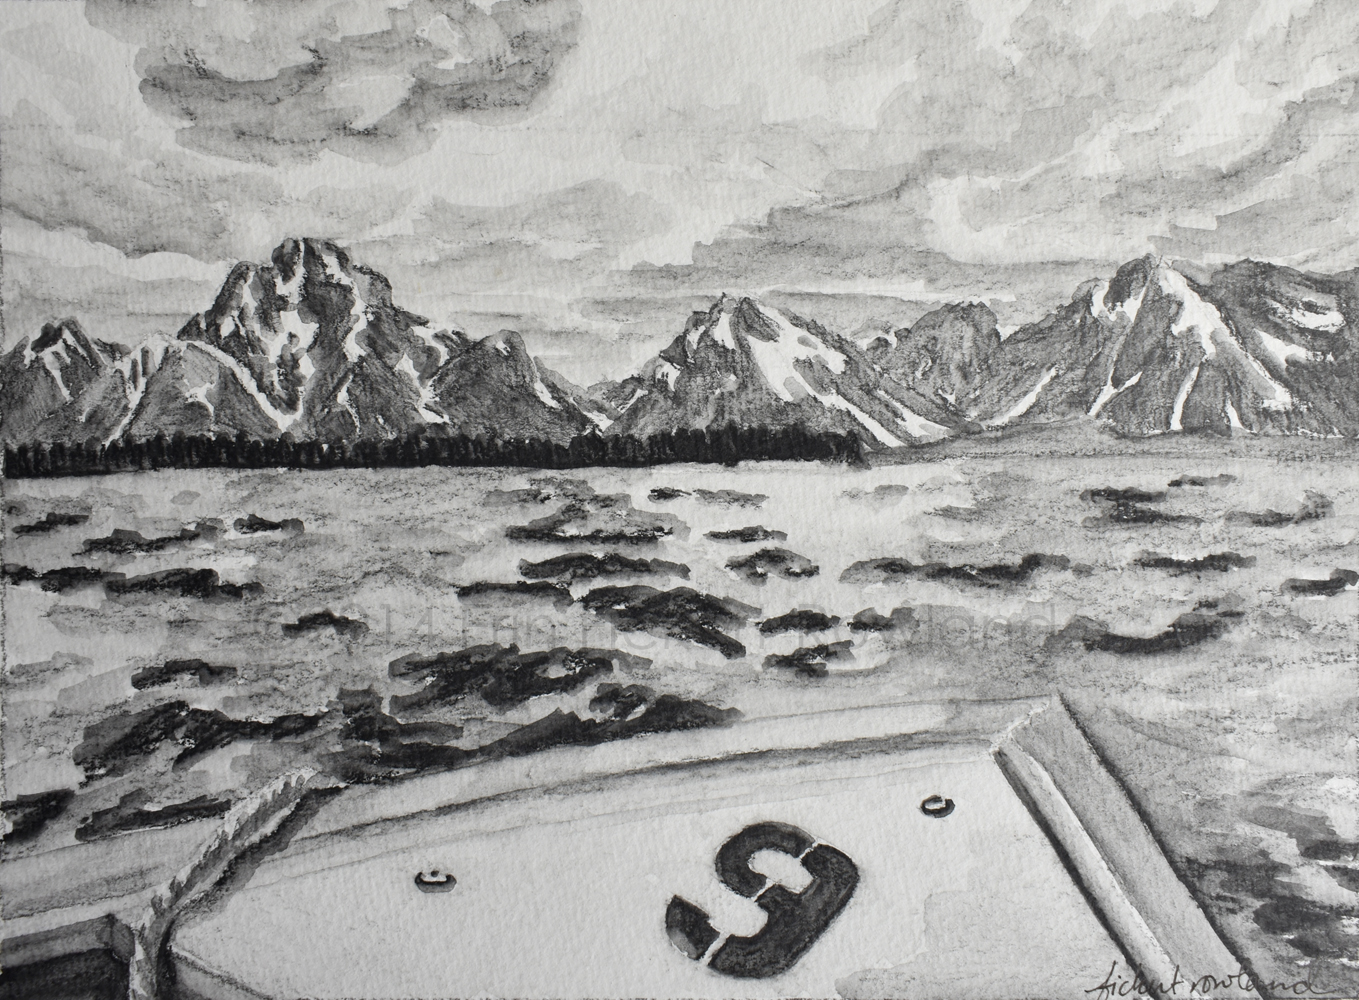 """Jenny Lake, Grand Teton National Park""  6 in x 8 in  Matted to 8 in x 10 in"